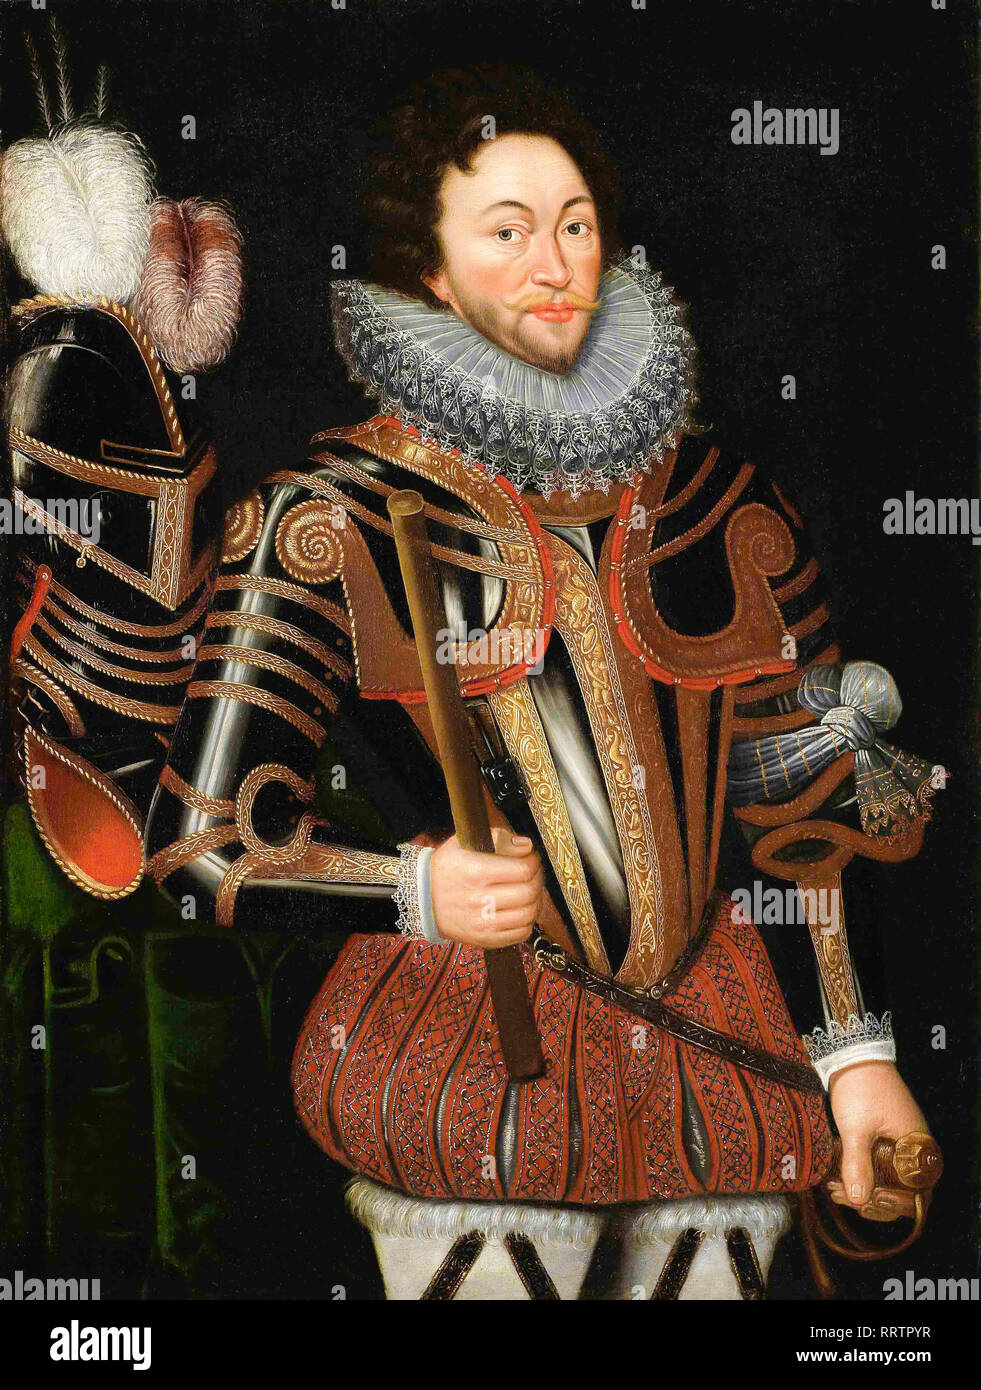 Sir Francis Drake (1540-96), portrait painting, 16th Century - Stock Image